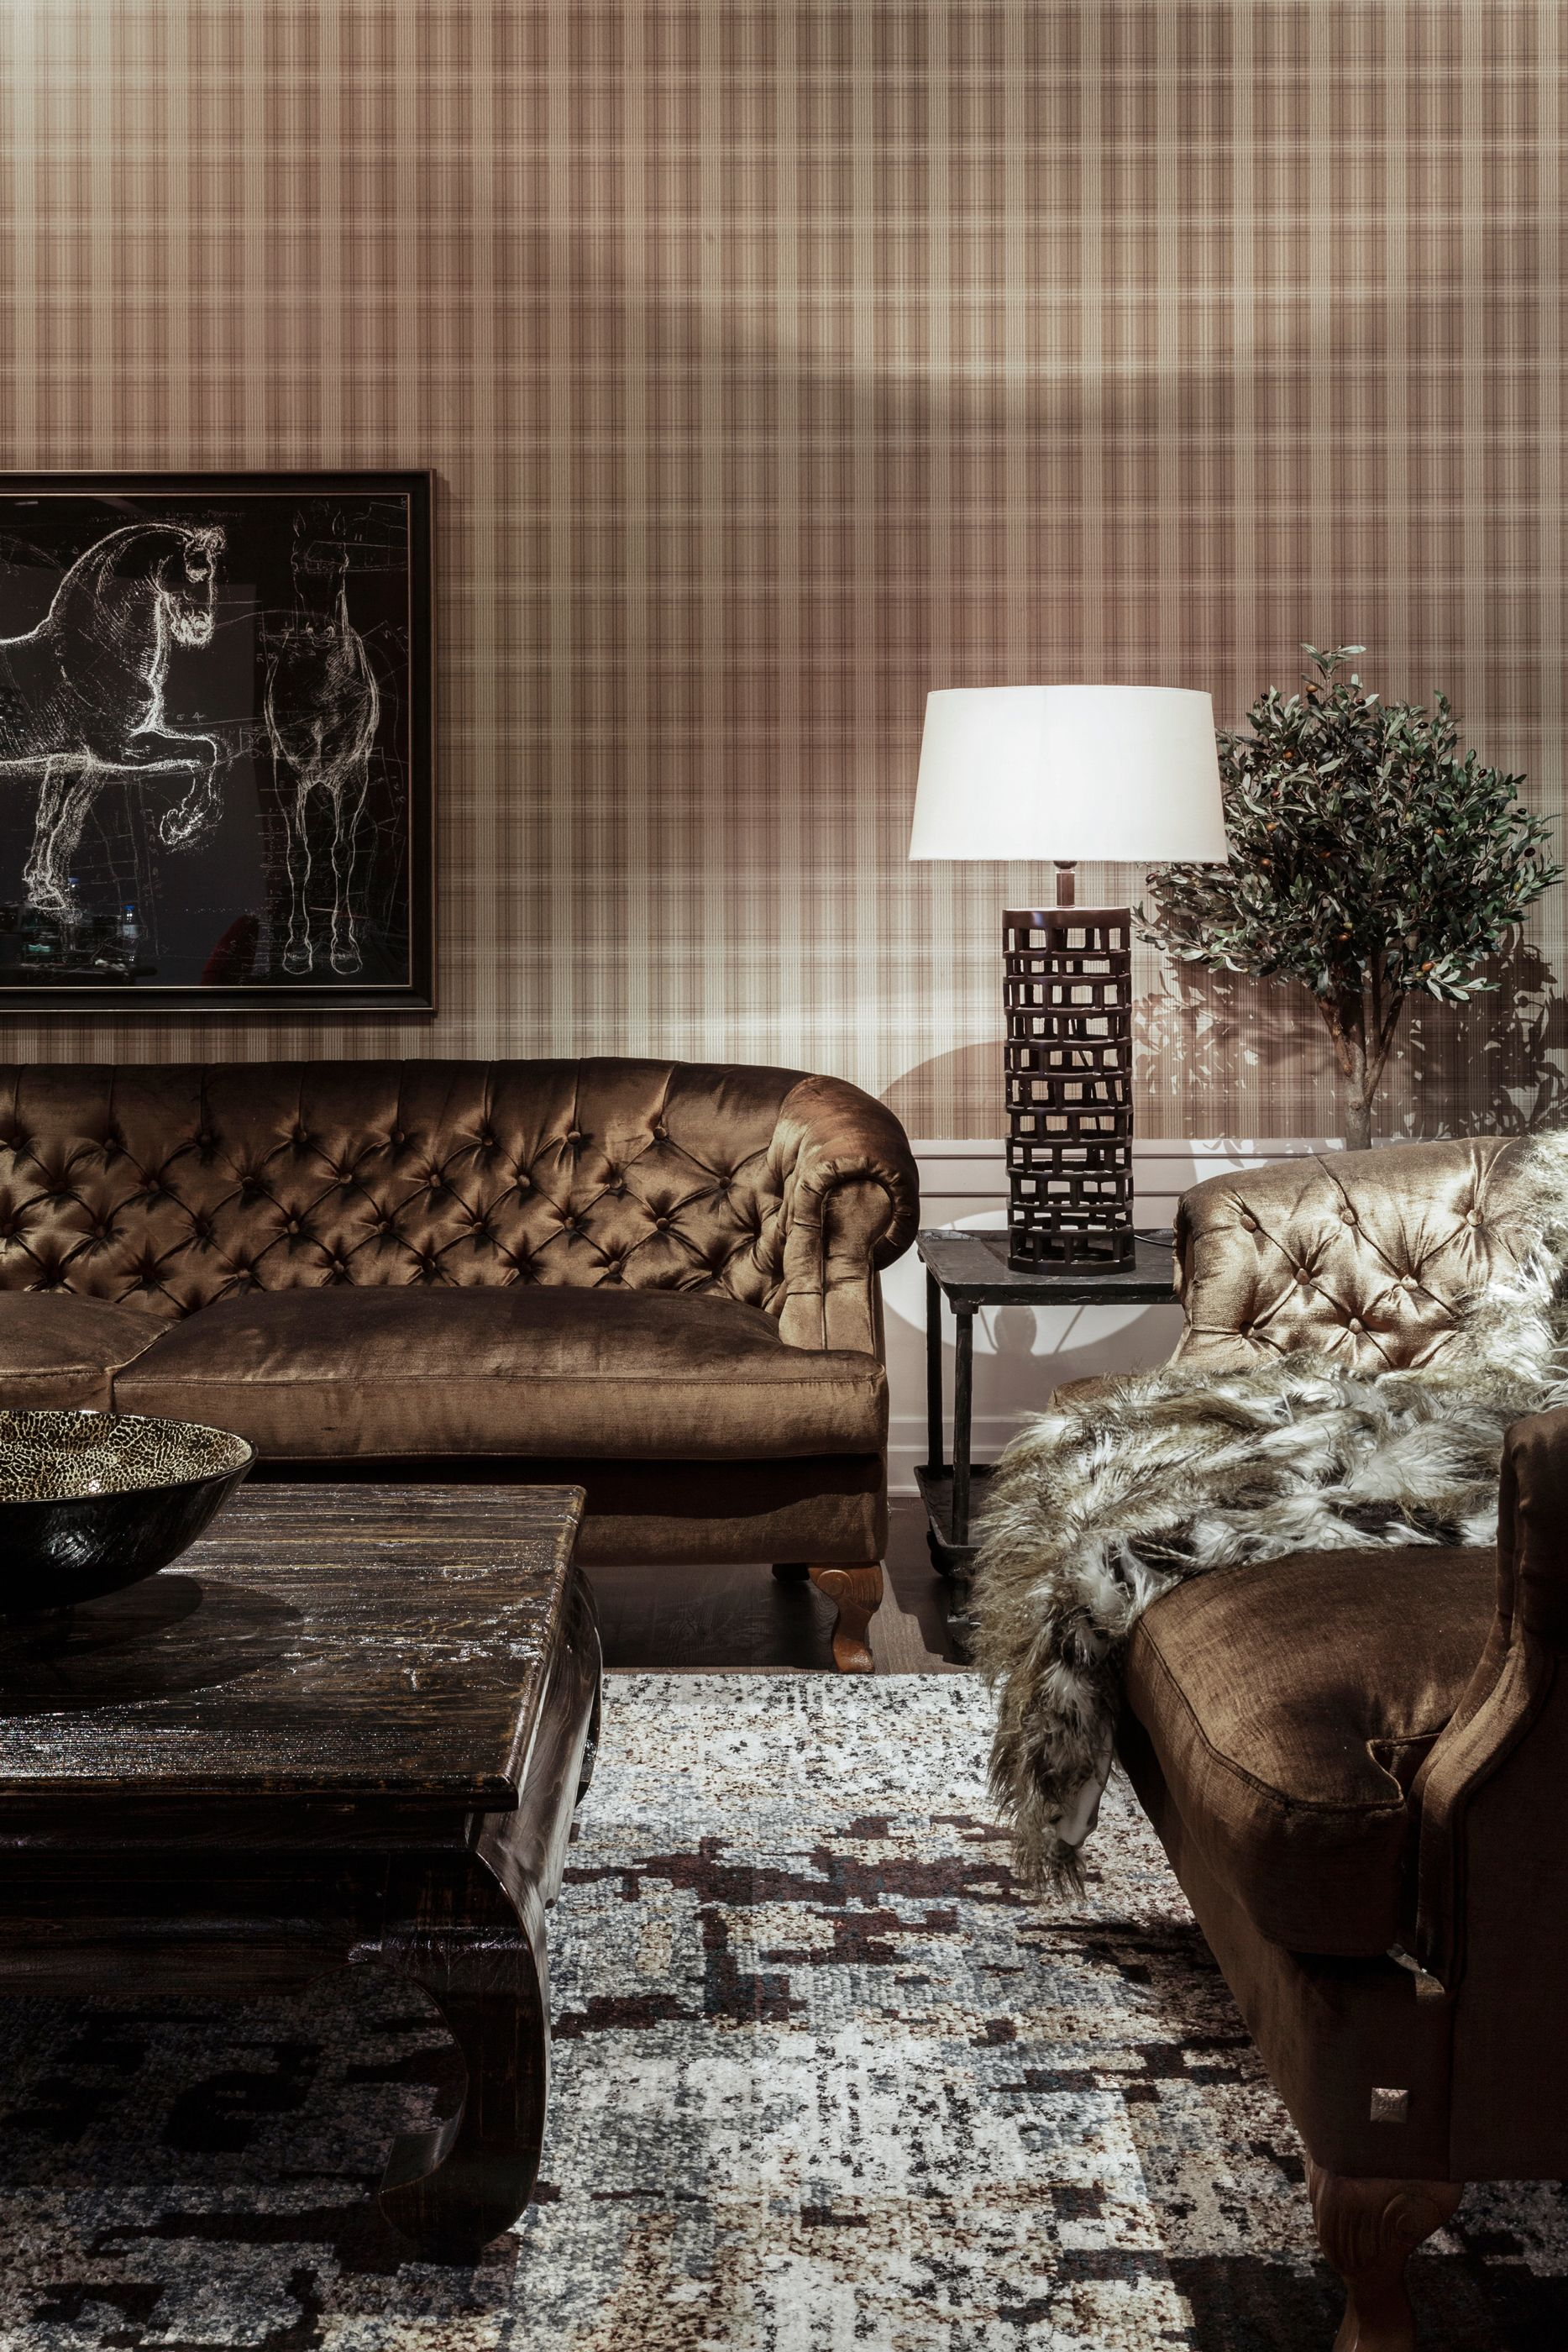 Living | Burlesque: Plush Velvet Sofa And Arm Chair To Complete A  Sophisticated Burlesque Look. Theatrical, Playful And Dramatic, The  Burlesque Look Brings ...